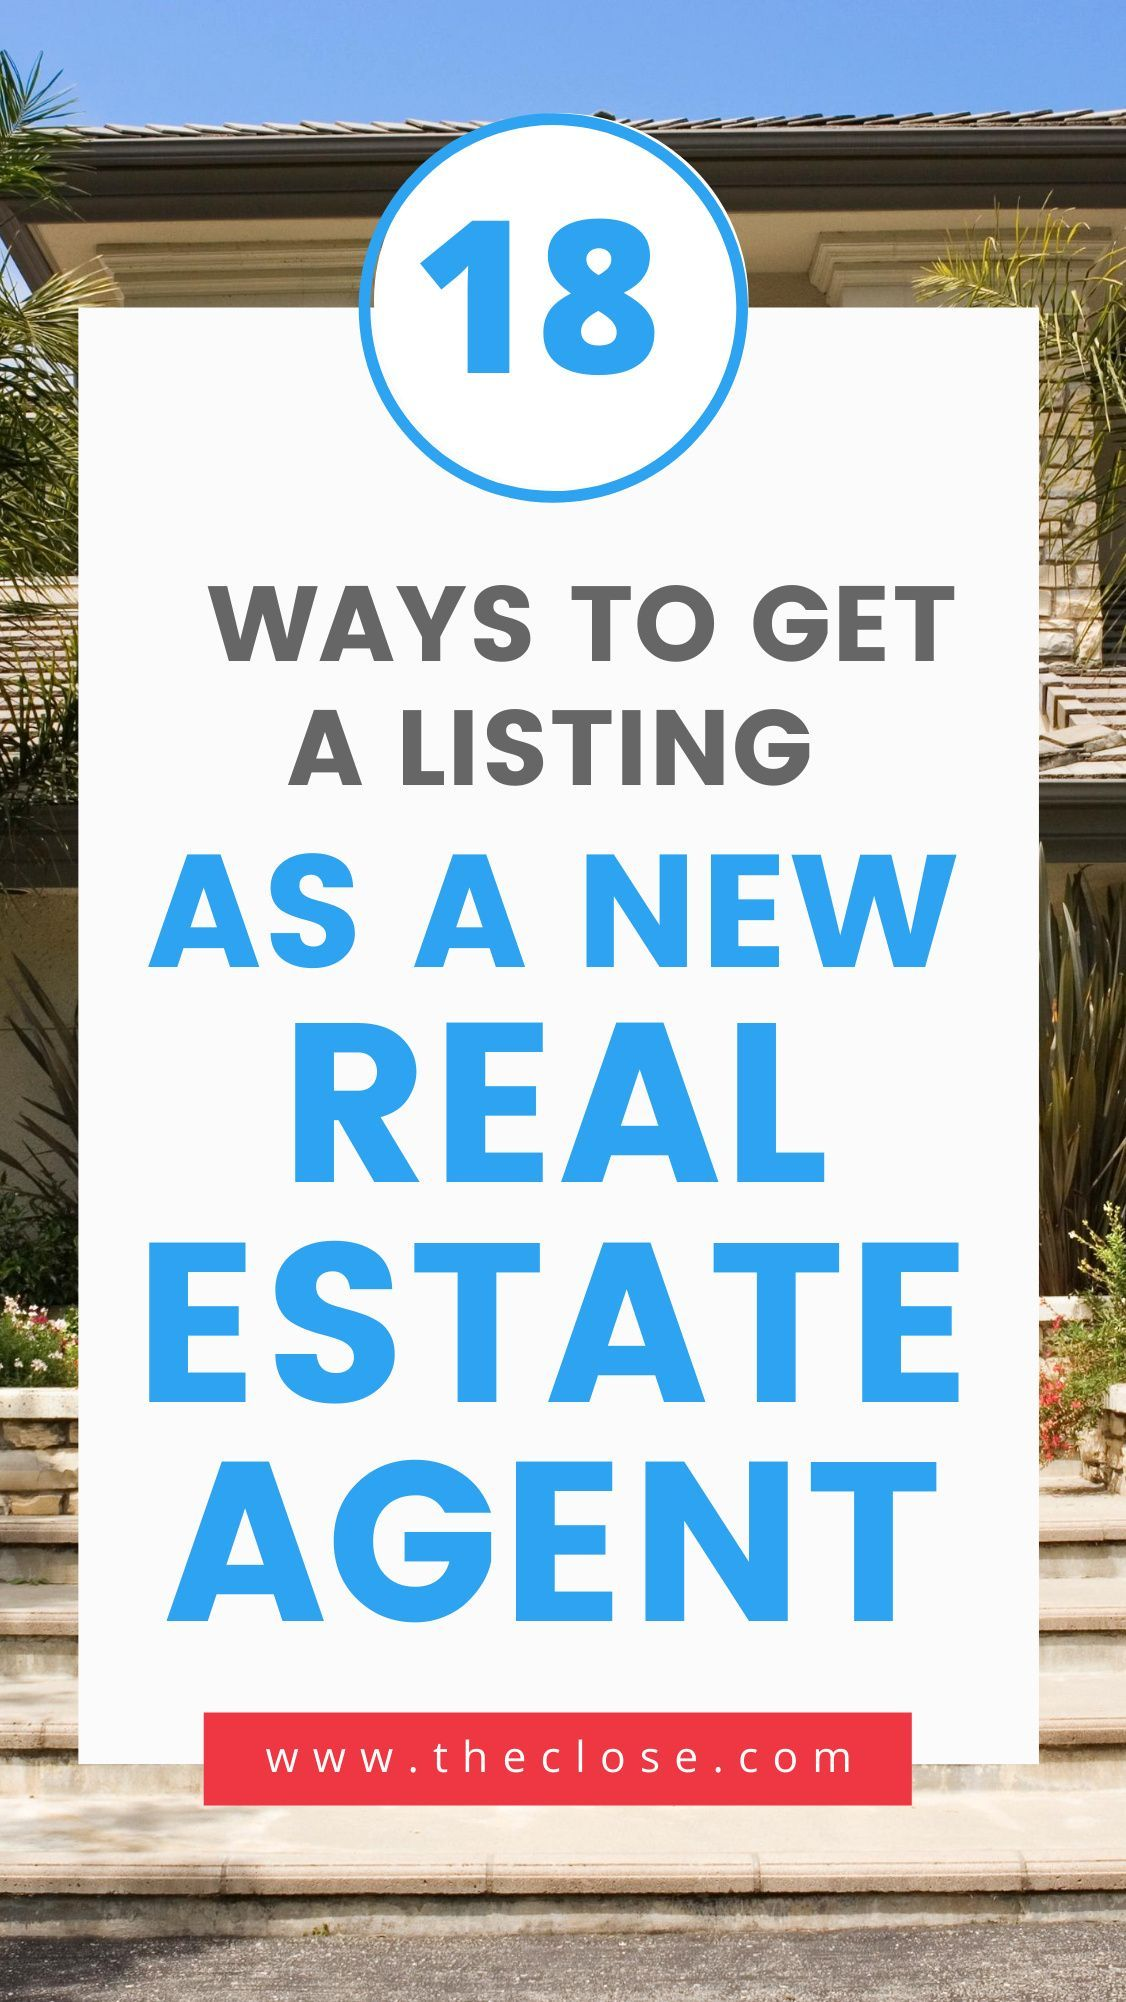 Are you a new real estate agent trying to learn how to get listings? We talked to 15 top producing luxury real estate agents to learn how they got their first listings and their advice for buyer's agents looking to make the switch to listing agent. Click here the proven ways top producing Realtors learned how to get listings. #realestate #marketing #leads #tips #strategy #howtoget #theclose